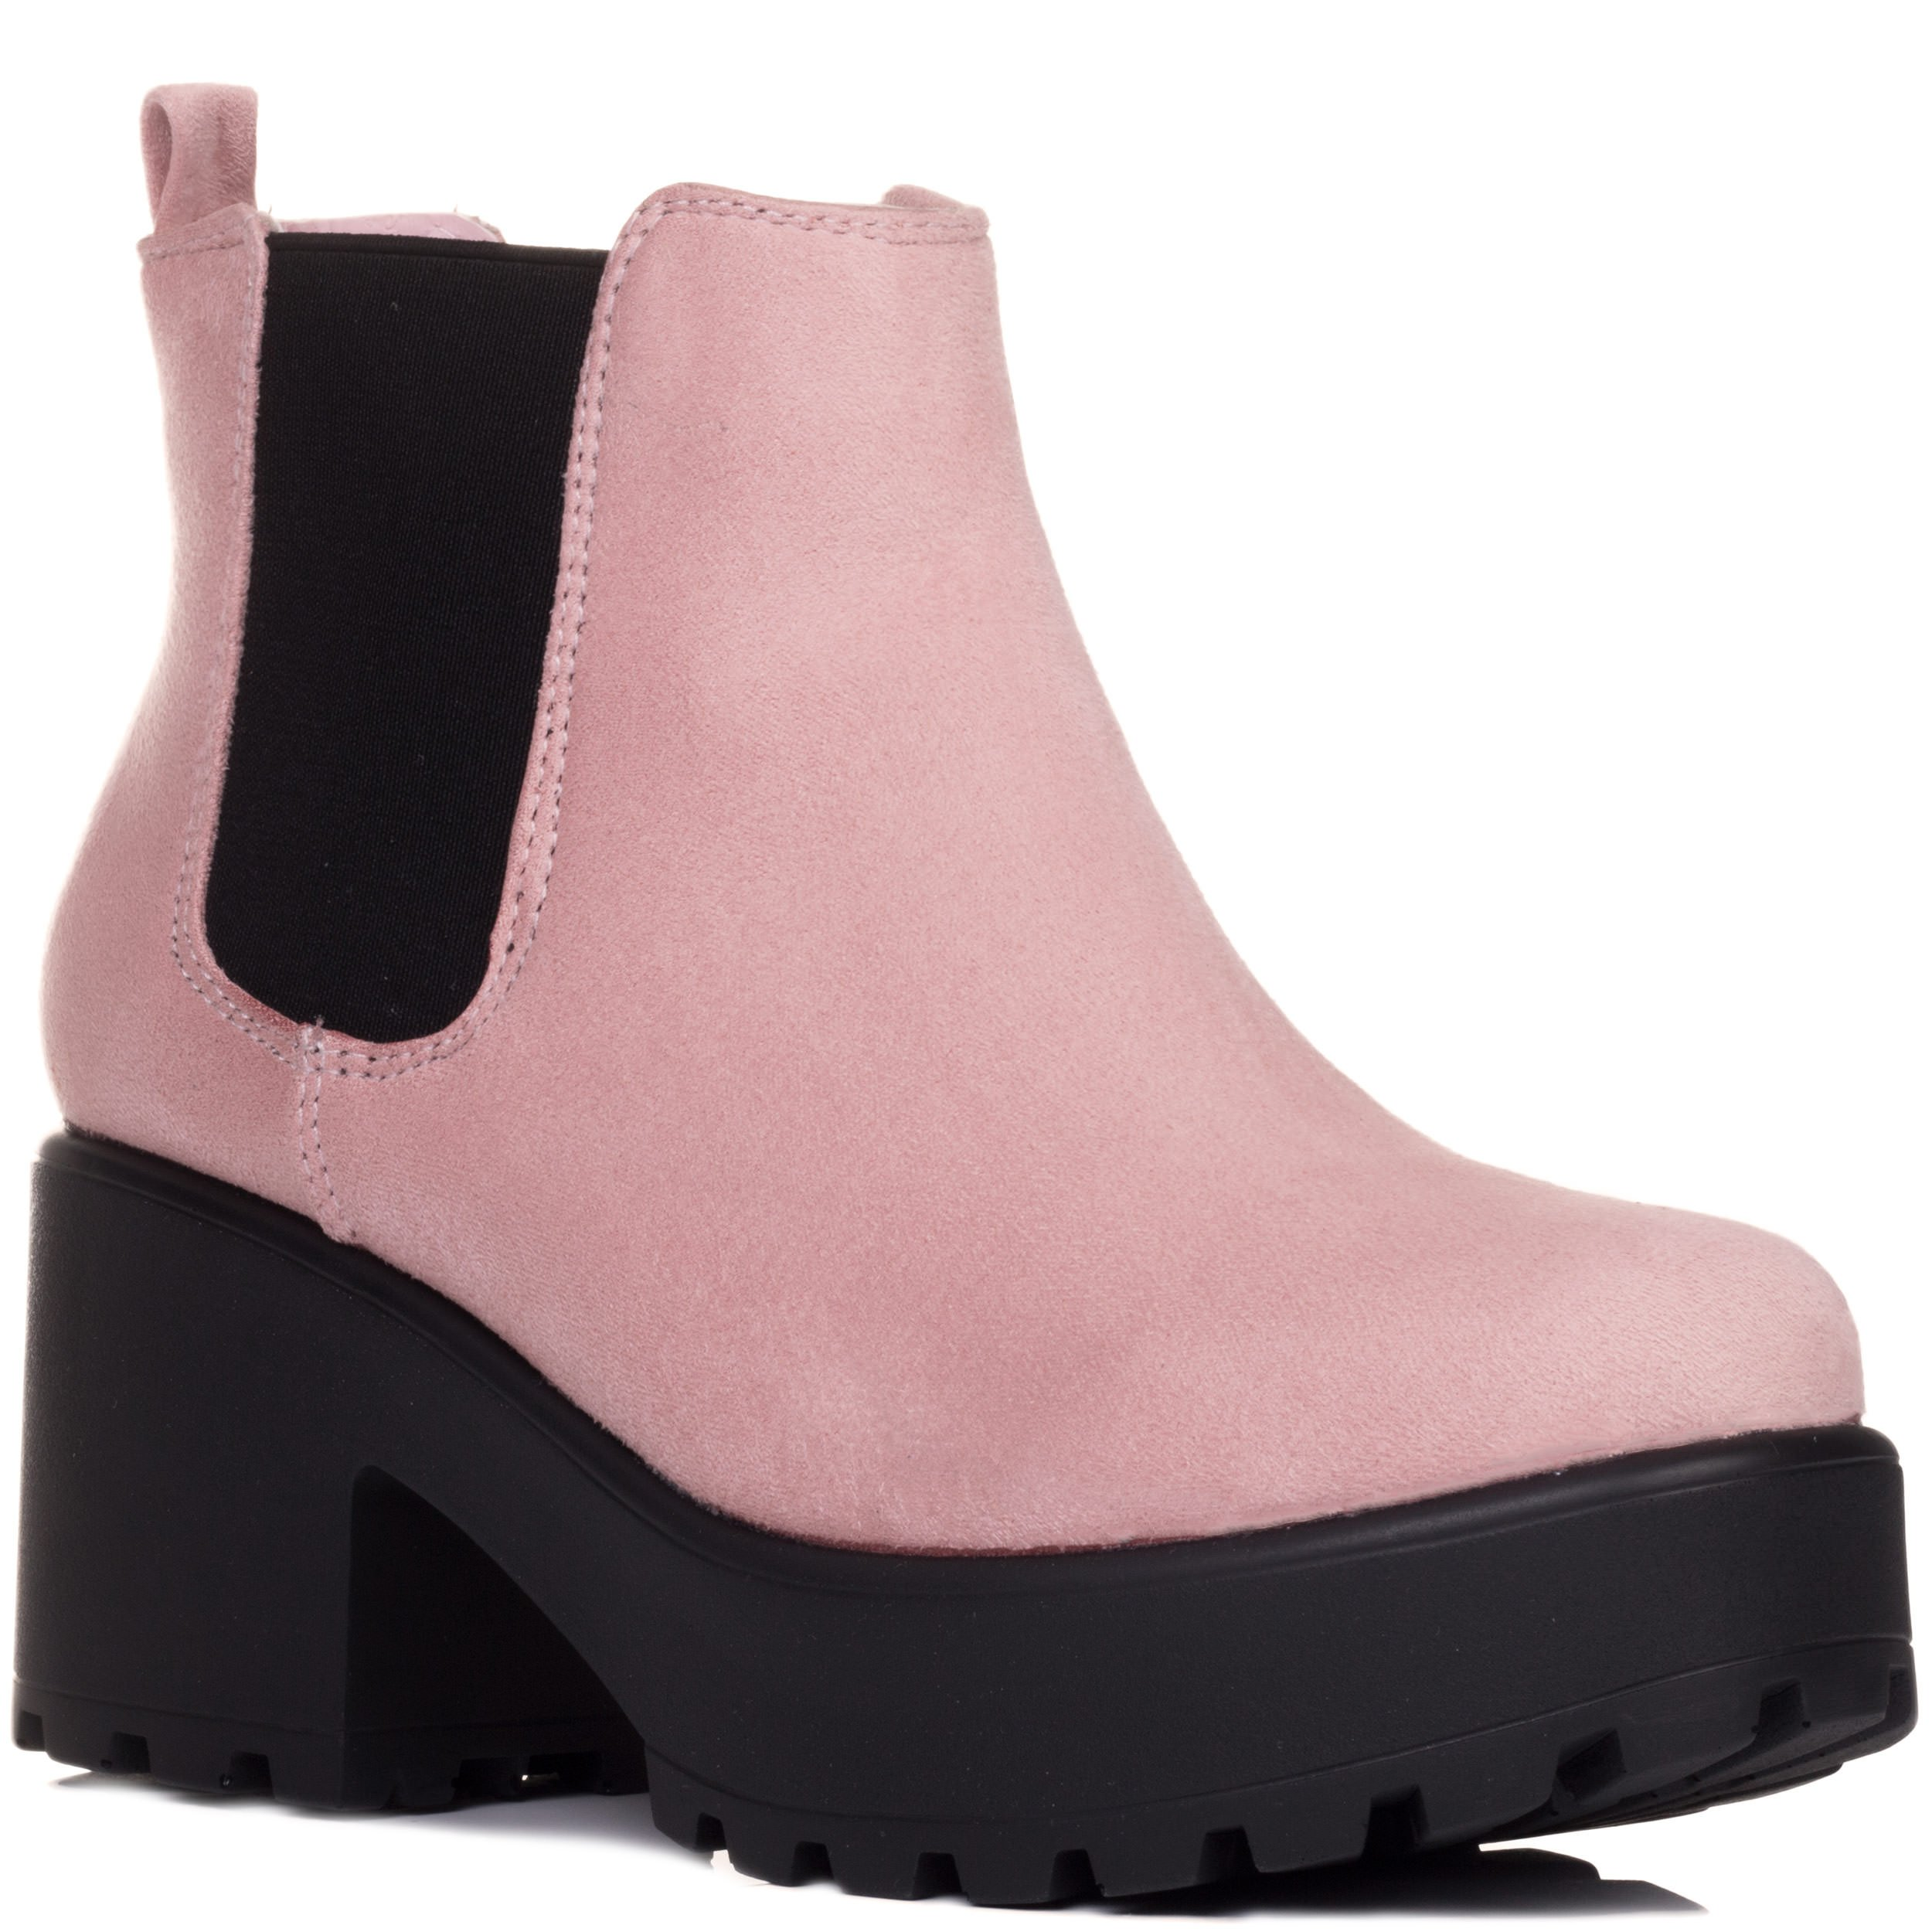 Platform Flared Block Heel Chelsea Ankle Boots Pink Suede Style Sz 5 by Spylovebuy